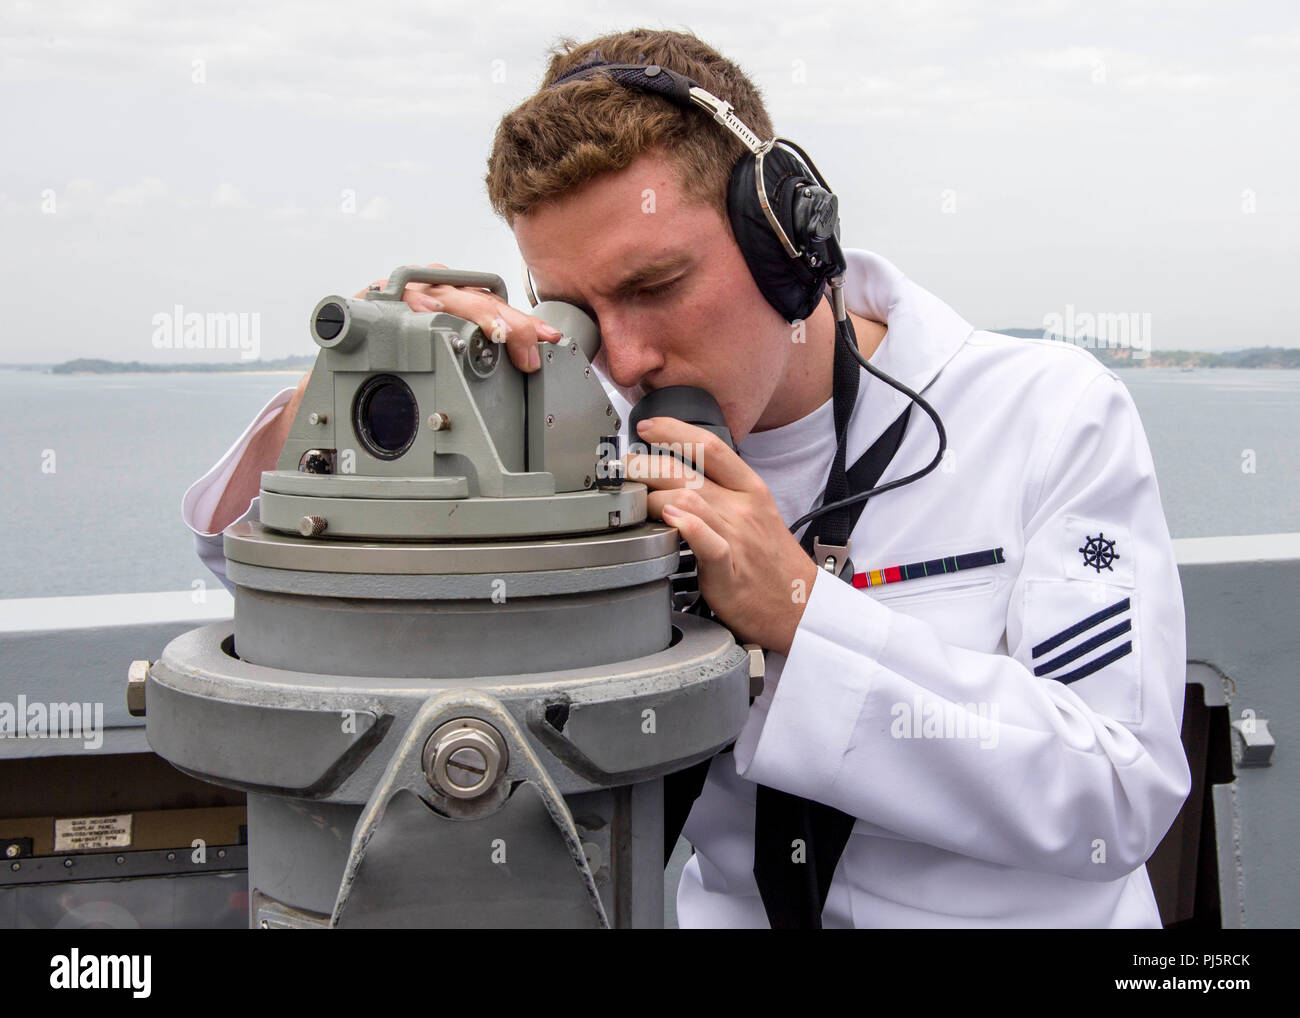 180824-N-PH222-0114 TRINCOMALEE, SRI LANKA (August 24, 2018) Quartermaster Seaman Keegan Taylor, from Houston, takes a bearing during a sea and anchor detail on the bridge wing of San Antonio-class amphibious transport dock USS Anchorage (LPD 23) before a scheduled port visit in Trincomalee, Sri Lanka, during a regularly scheduled deployment of the Essex Amphibious Ready Group (ARG) and 13th Marine Expeditionary Unit (MEU). Anchorage and the embarked Marines of the 13th MEU are conducting a theater security cooperation exercise with the Sri Lankan Navy and the Navy Marines. Part of a growing U - Stock Image